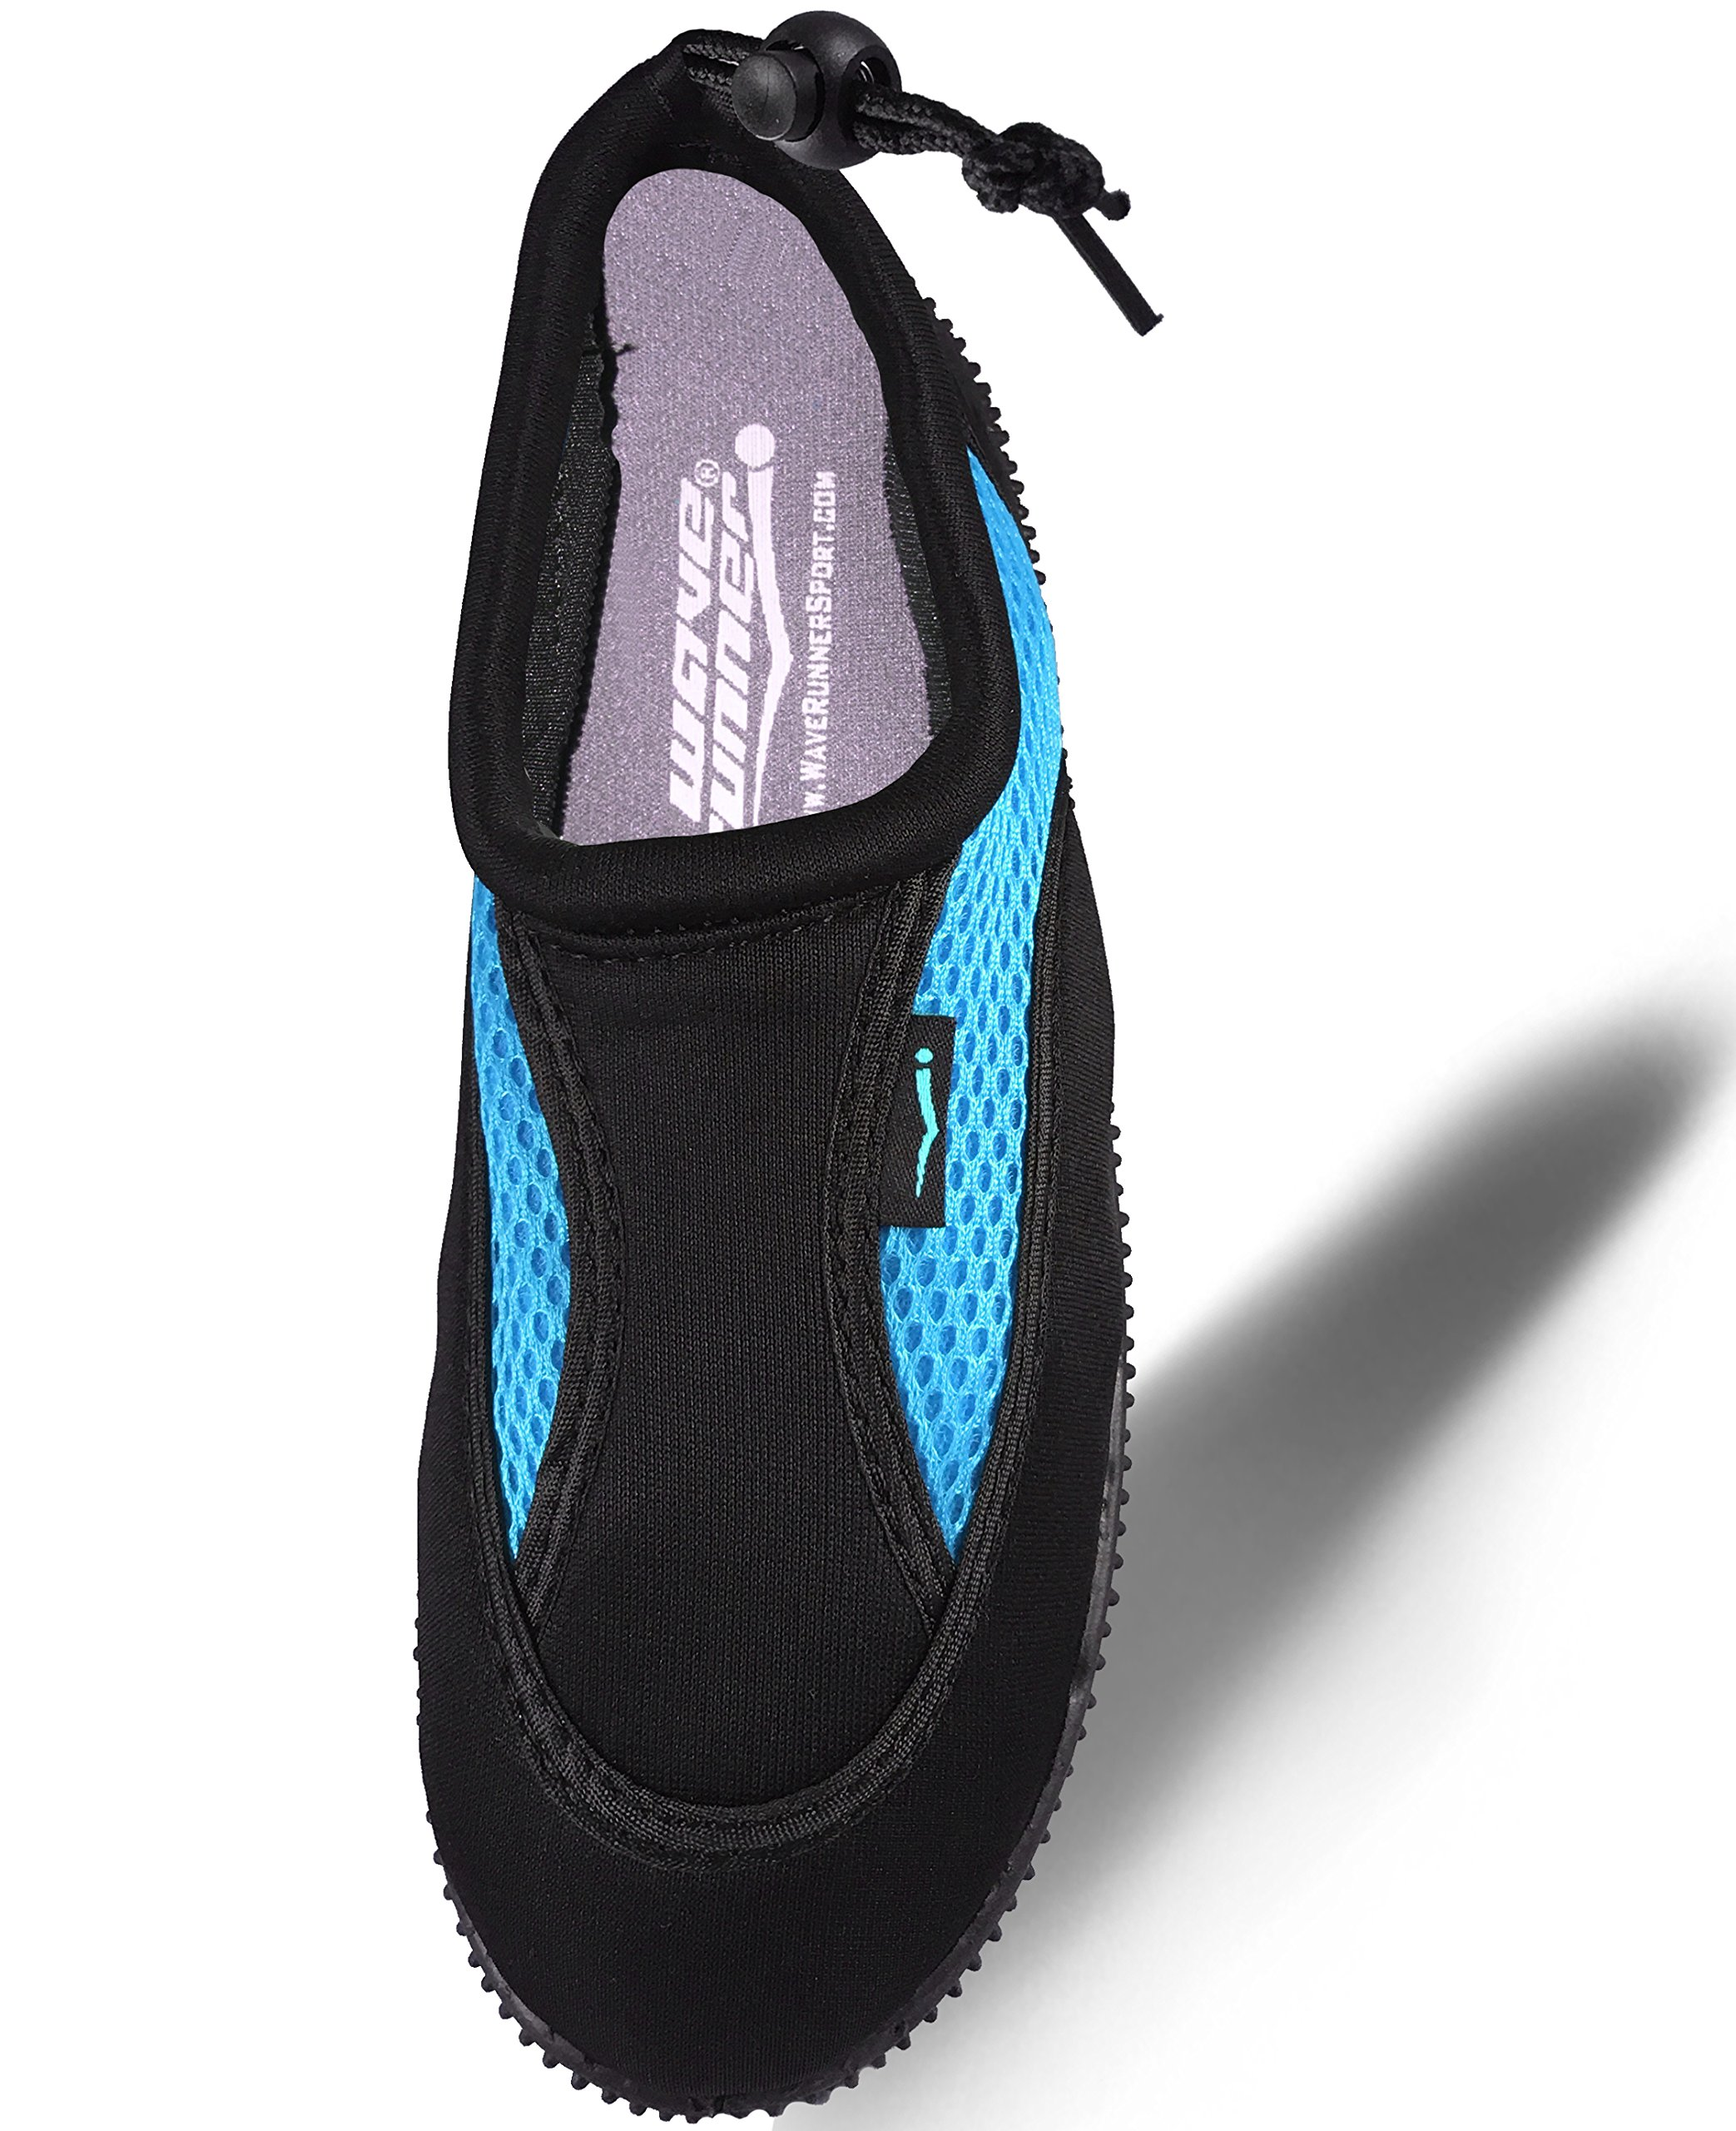 Quick Dry Water Shoes Aqua Socks Barefoot Slip-On with Adjustable Back Strap for Men Women & Children (7 US Woman, Black and Turquoise)